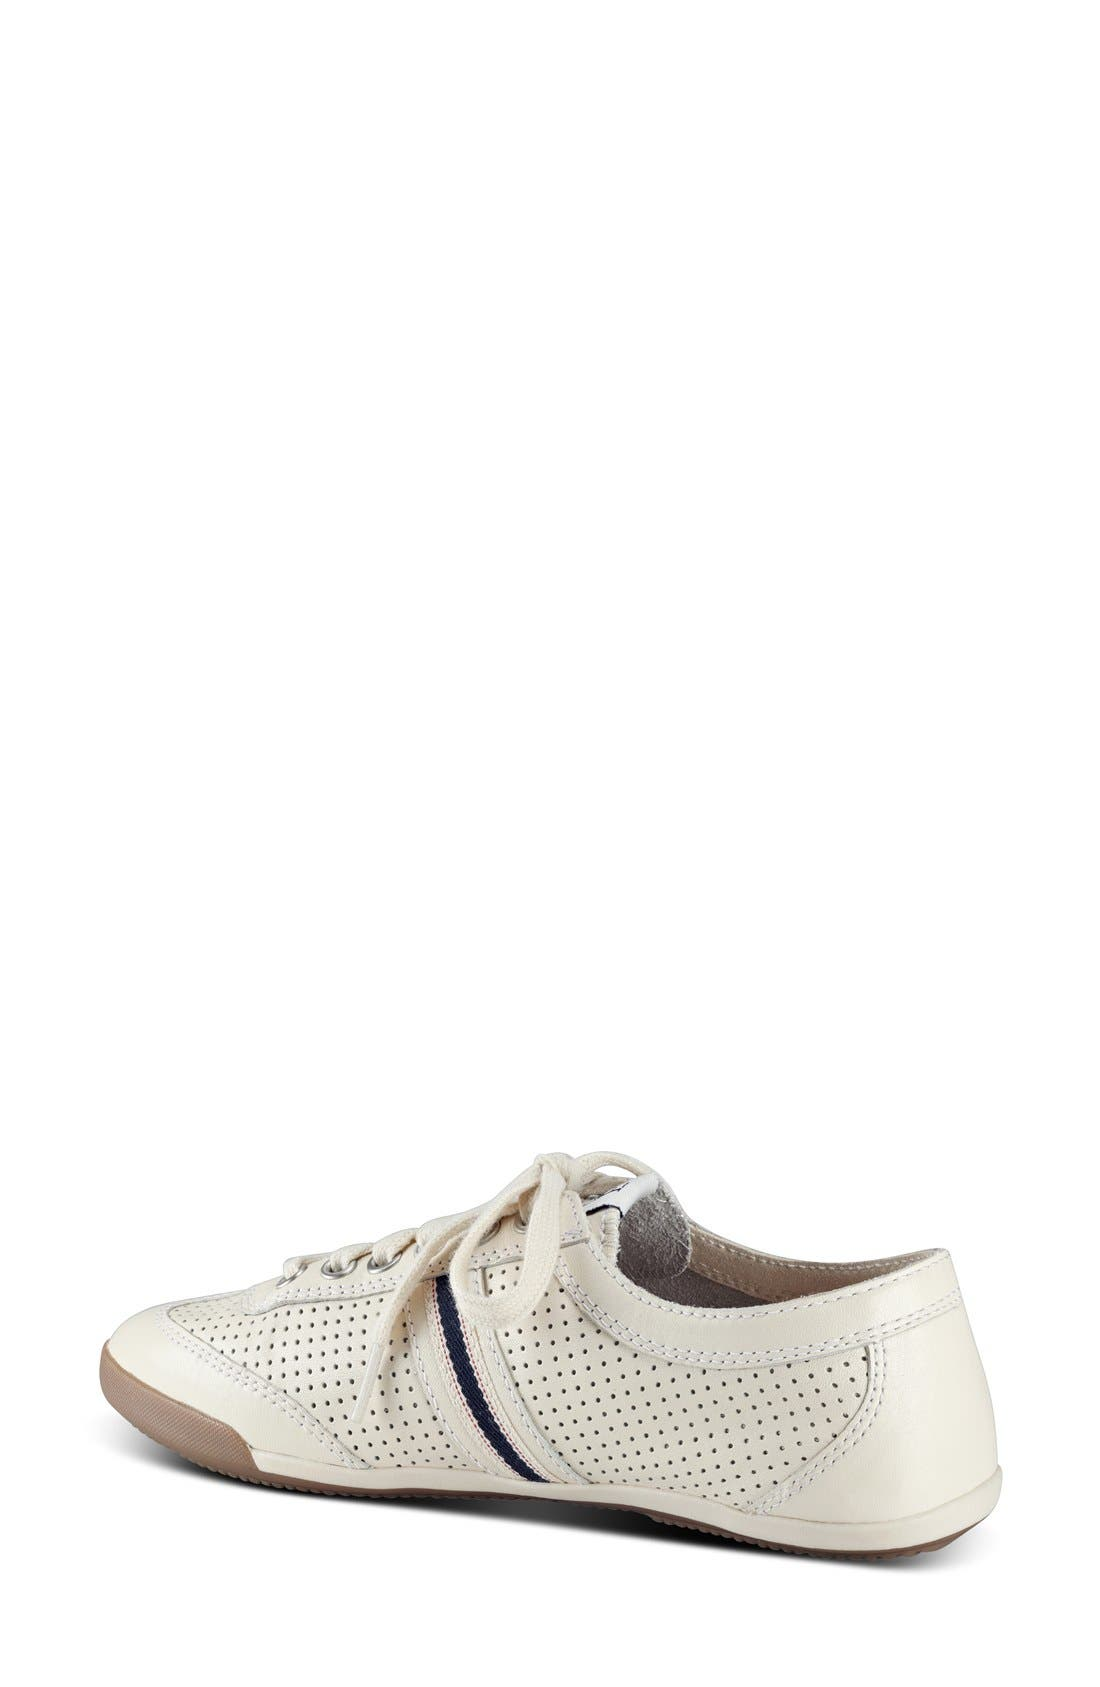 'Escondido' Sneaker,                             Alternate thumbnail 2, color,                             PALE WHITE LEATHER